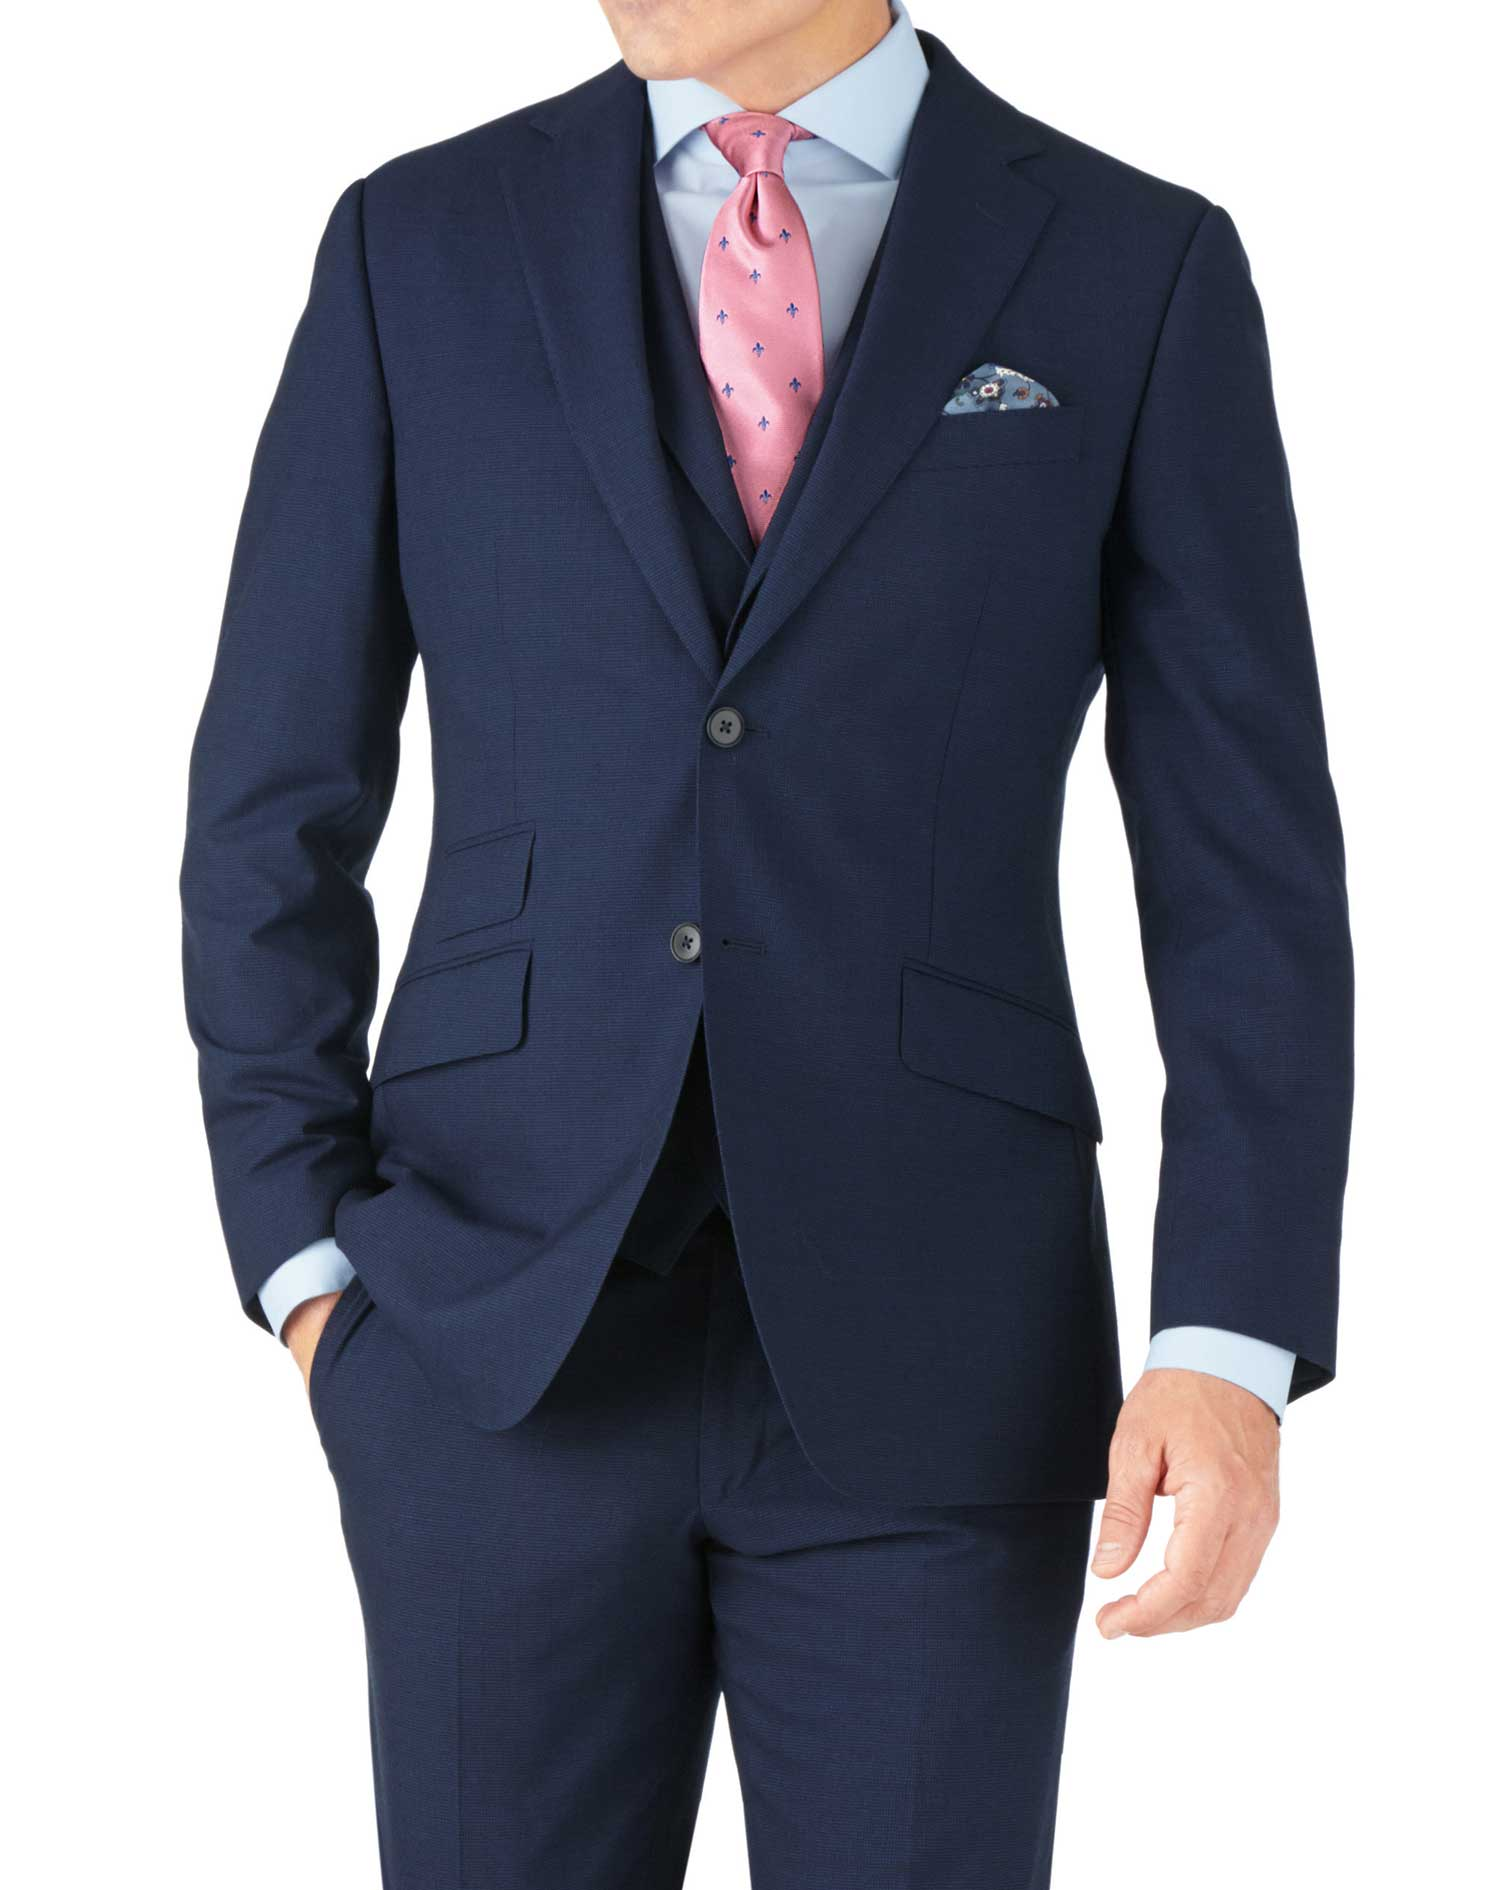 Indigo Blue Puppytooth Slim Fit Panama Business Suit Wool Jacket Size 46 Long by Charles Tyrwhitt